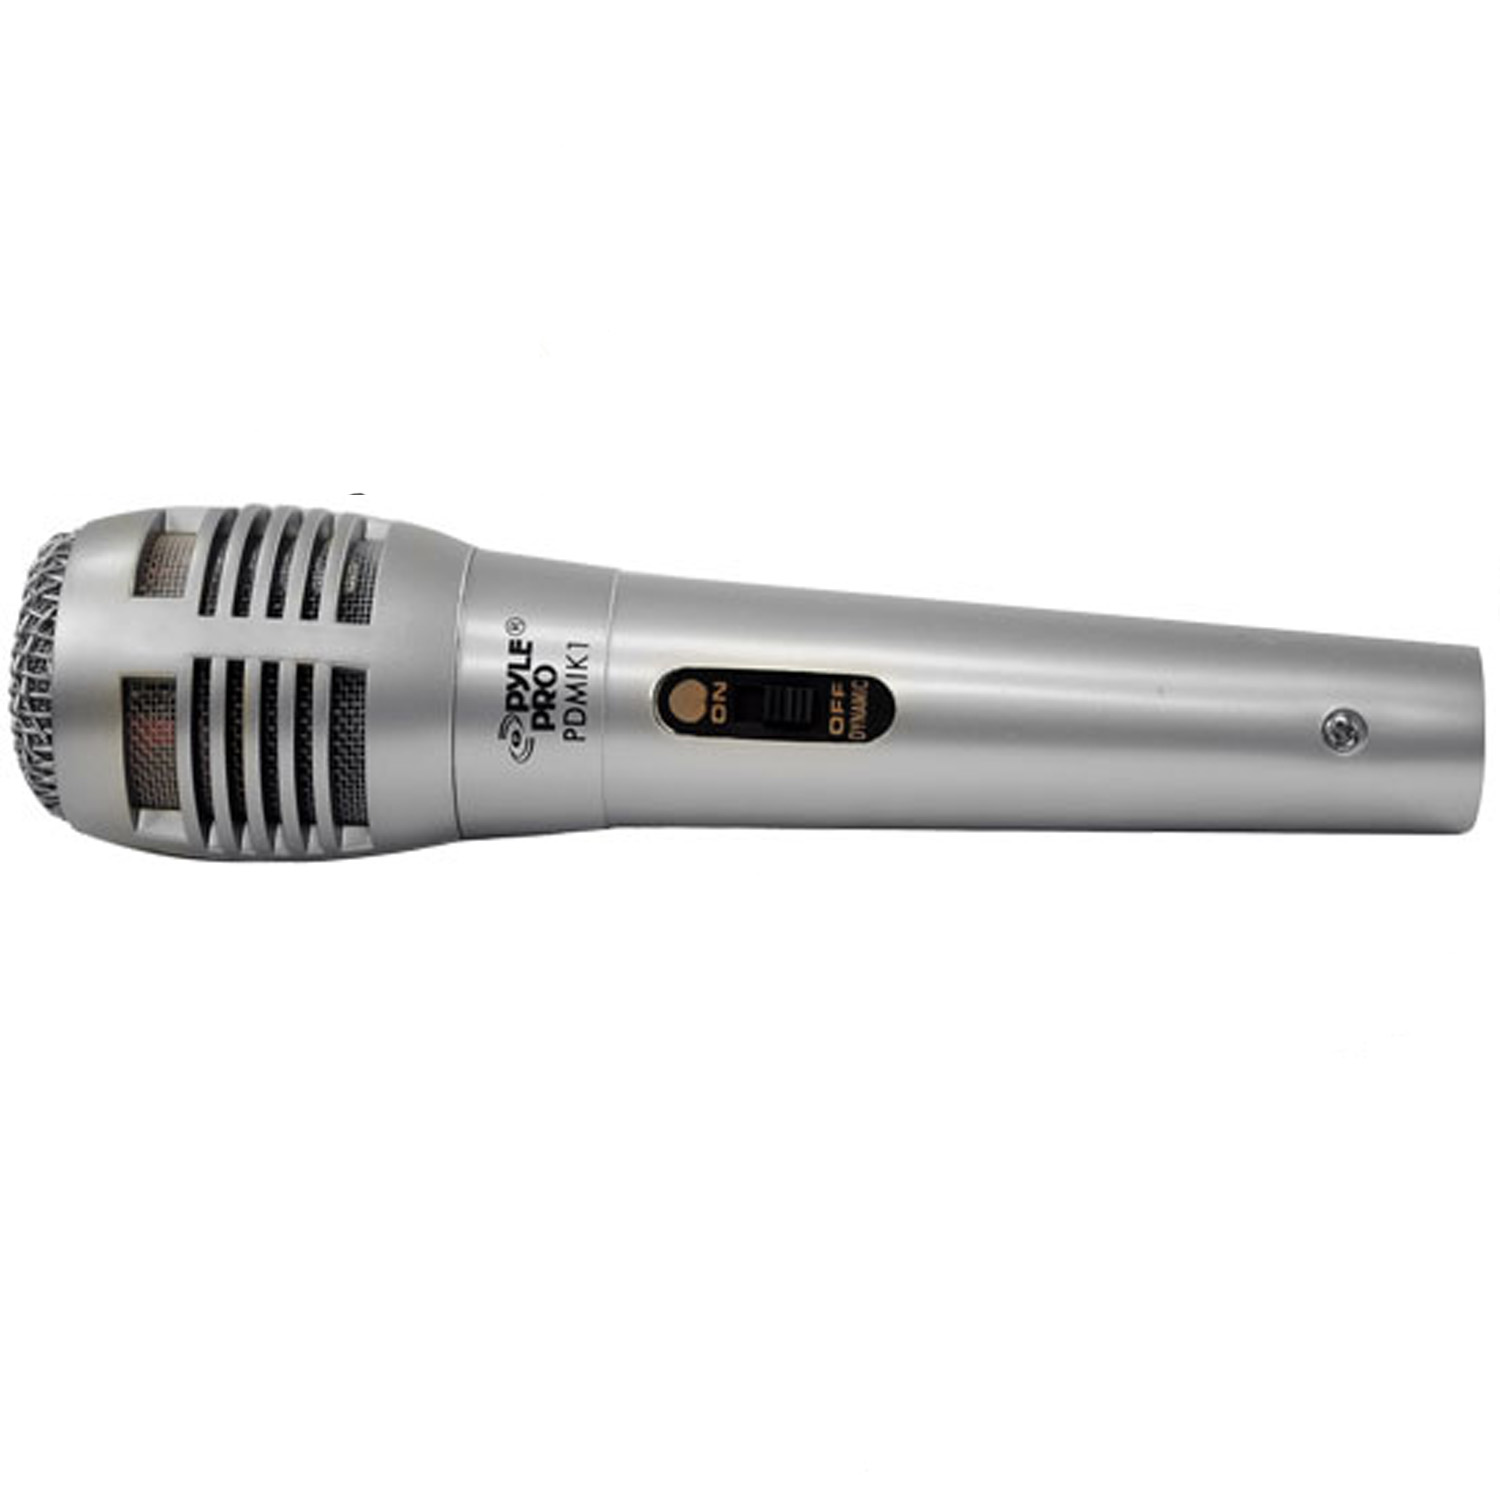 Pyle Professional Moving Coil Dynamic Handheld Microphone, Silver by Pyle